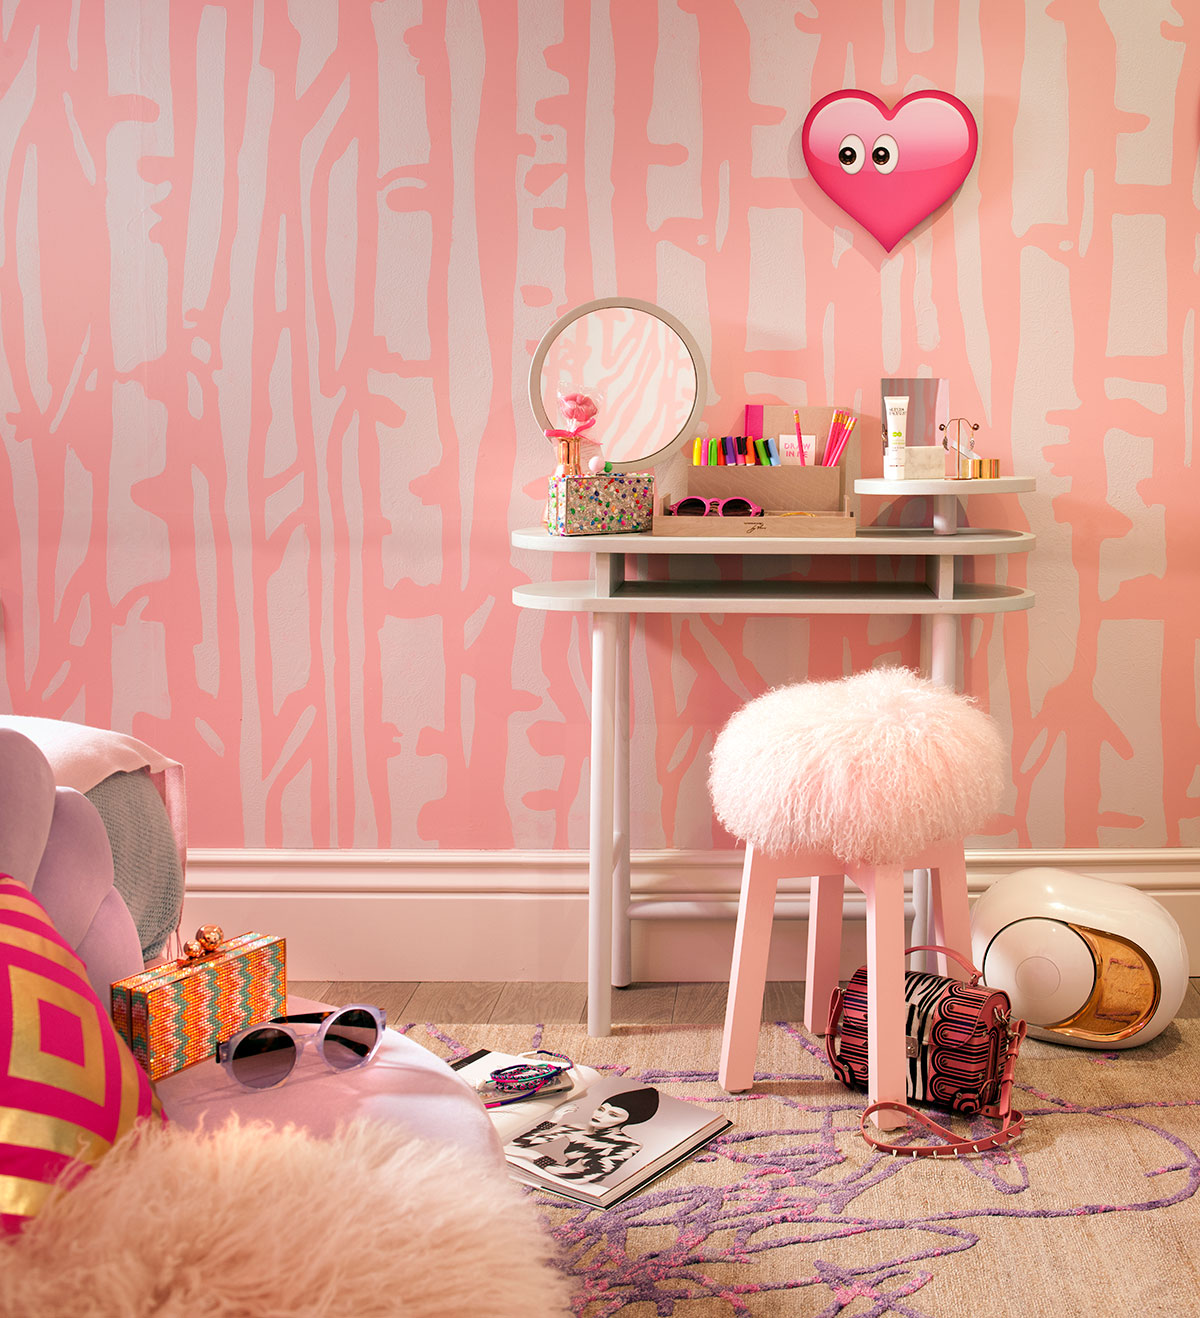 Details in the quirky interior design bedroom for holiday House, London